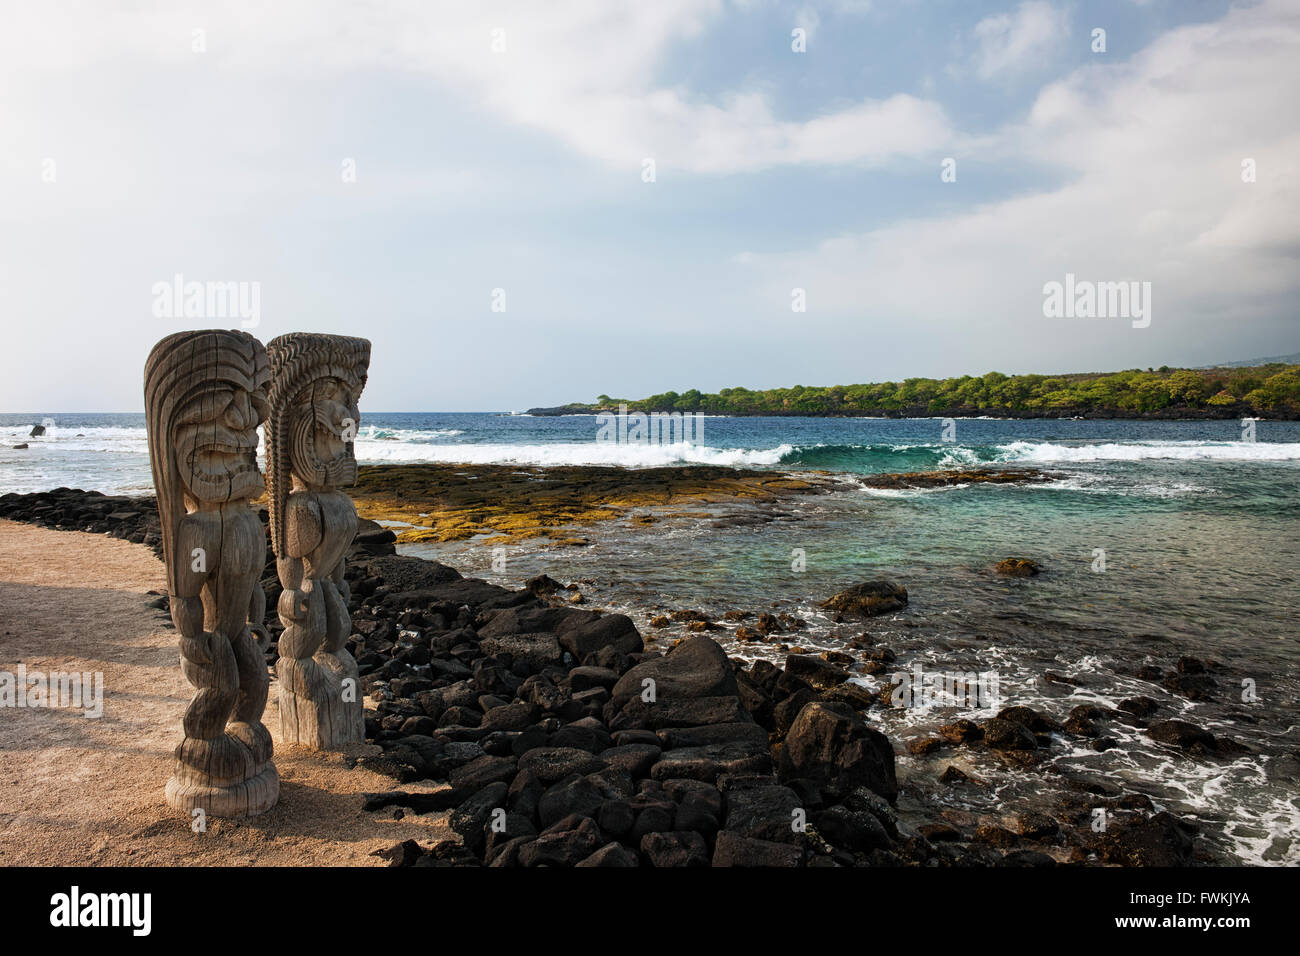 Fierce Ki'i statues stand guard overlooking Honaunau Bay at The Place of Refuge on the Big Island of Hawaii. - Stock Image